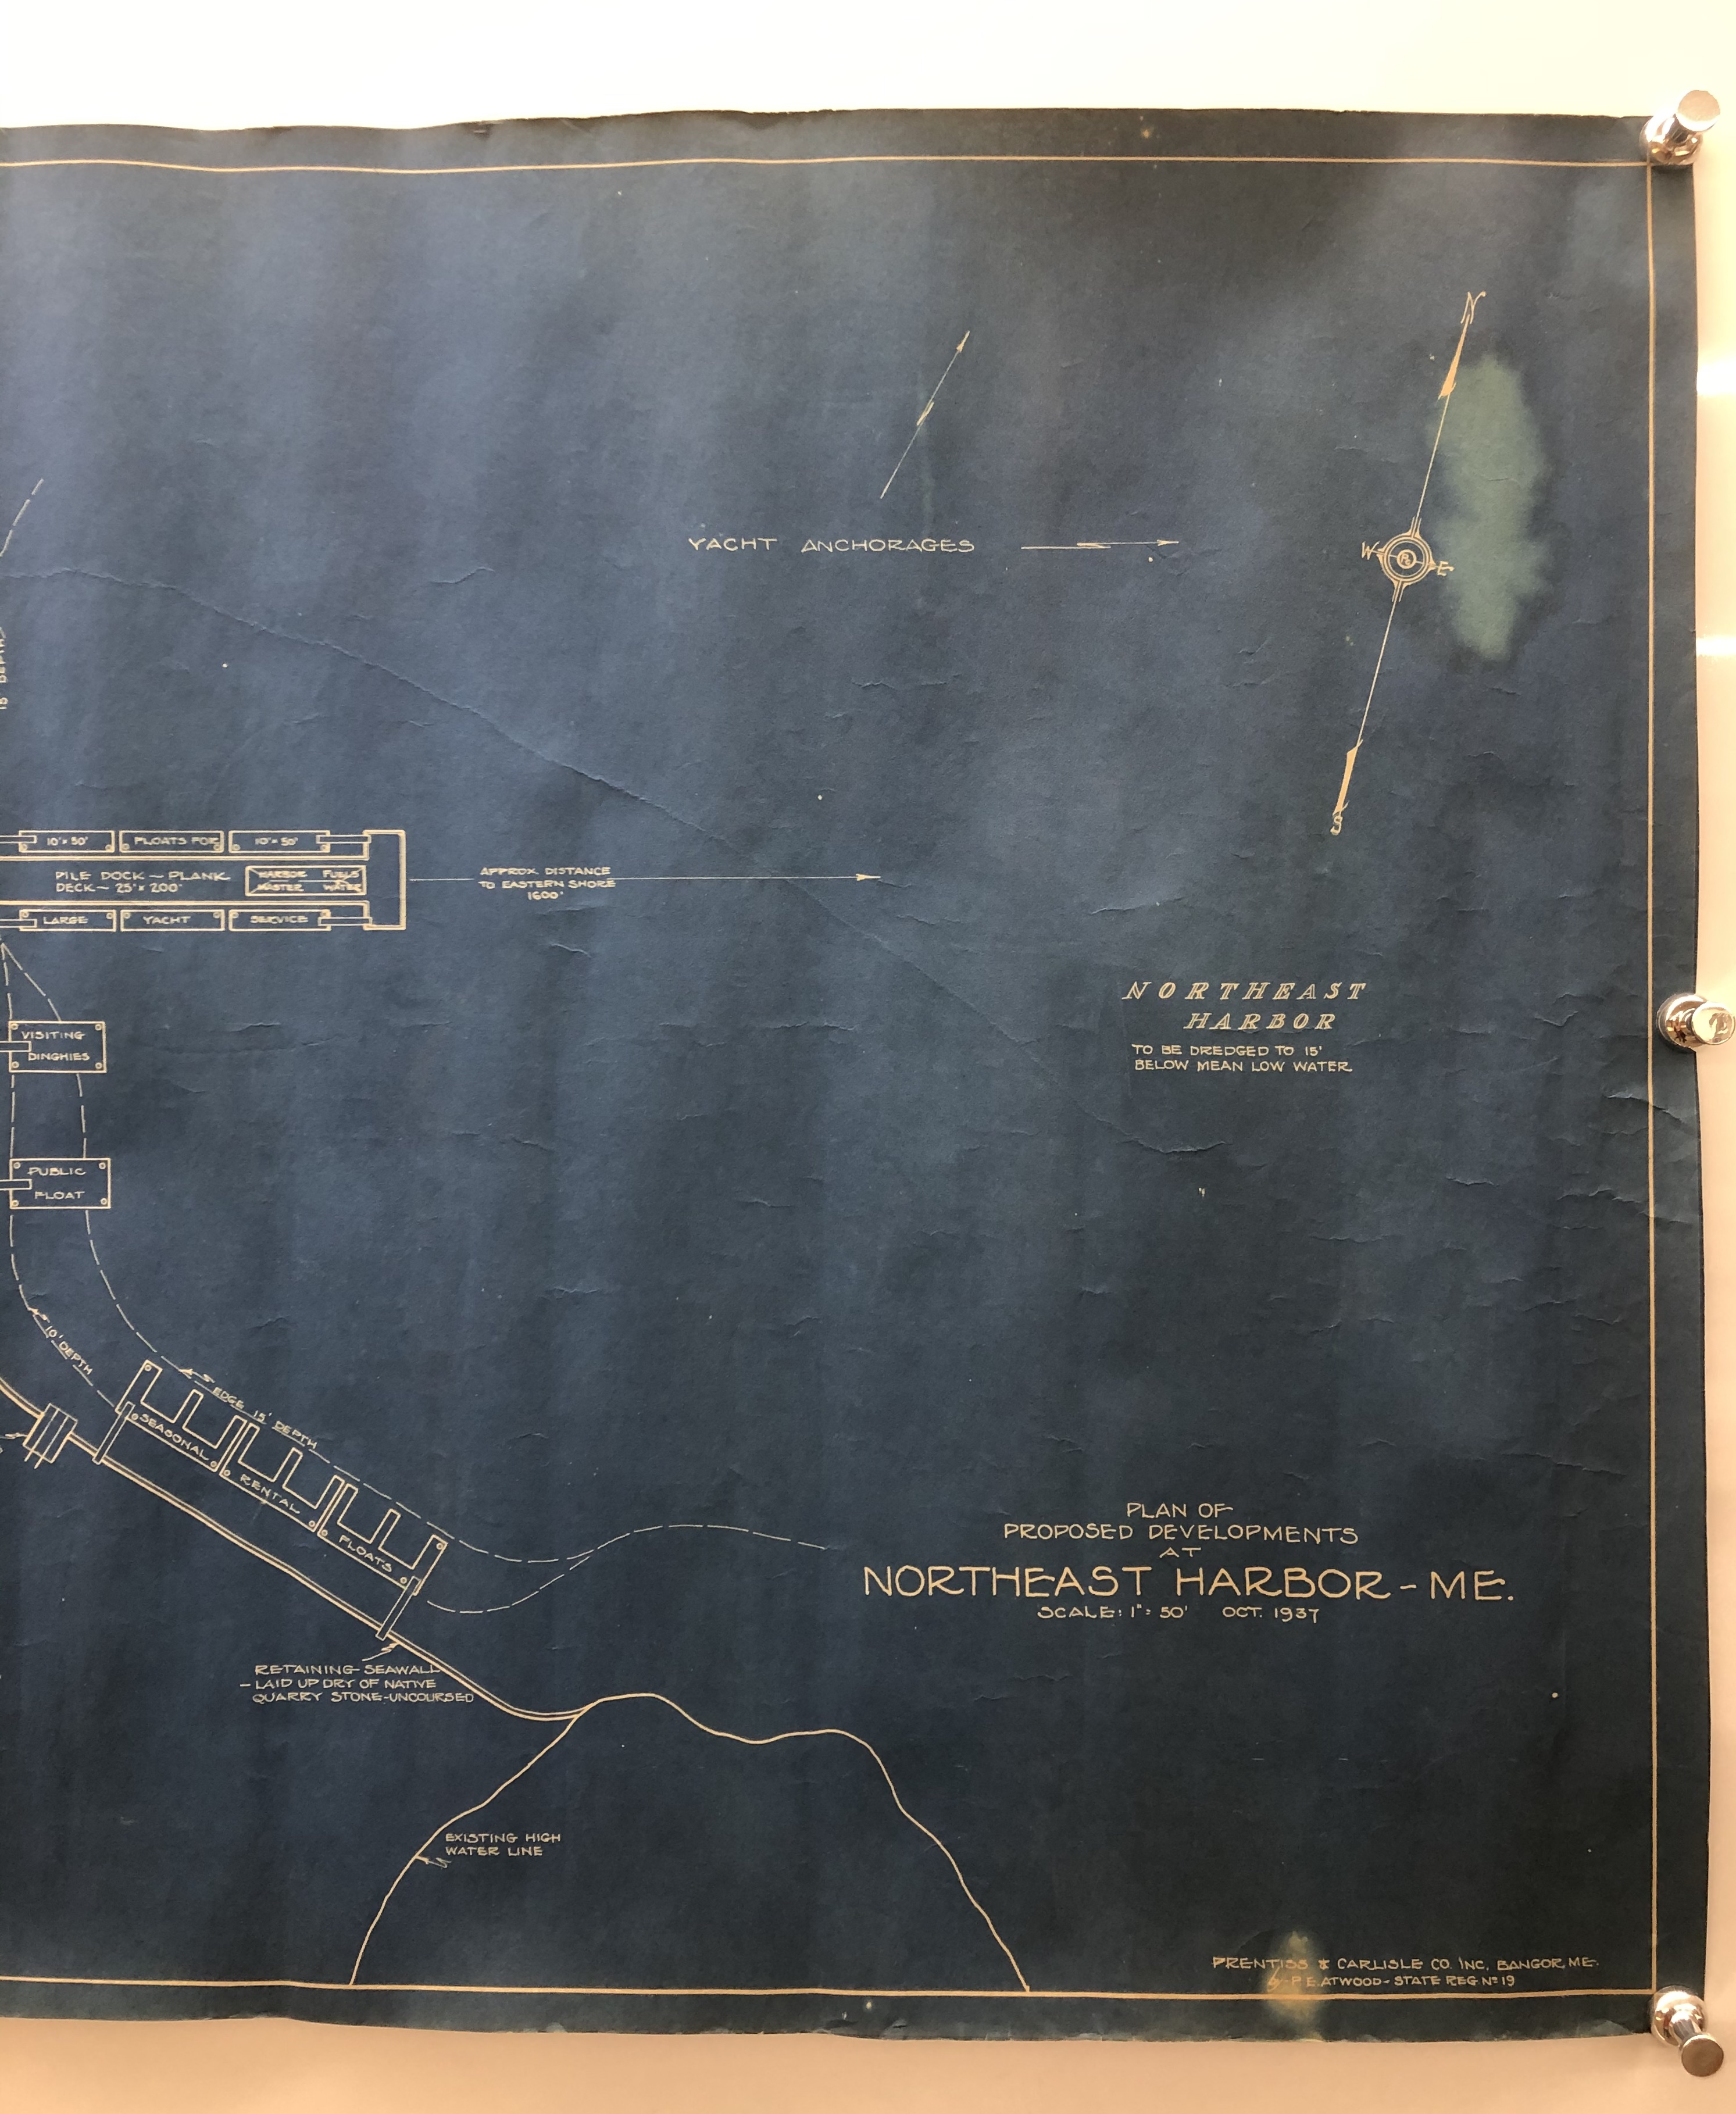 Plan of Proposed Developments at Northeast Harbor